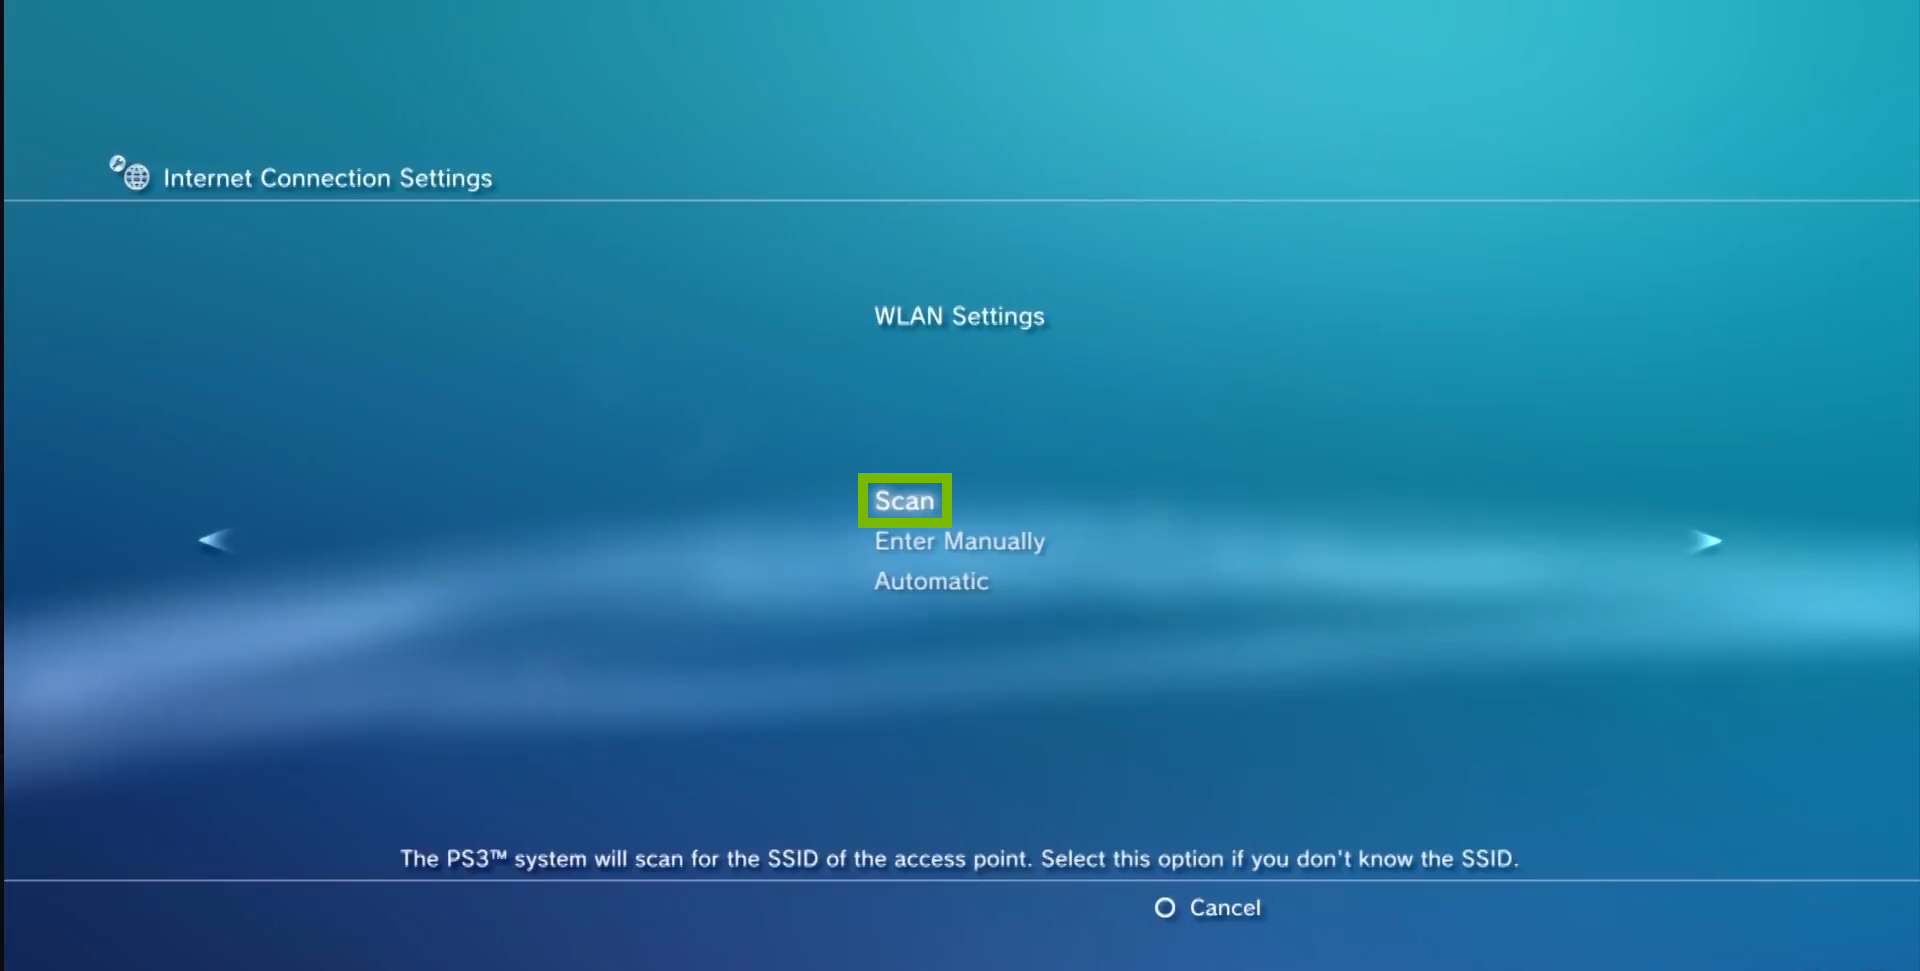 WLAN Settings with Scan option selected. Screenshot.